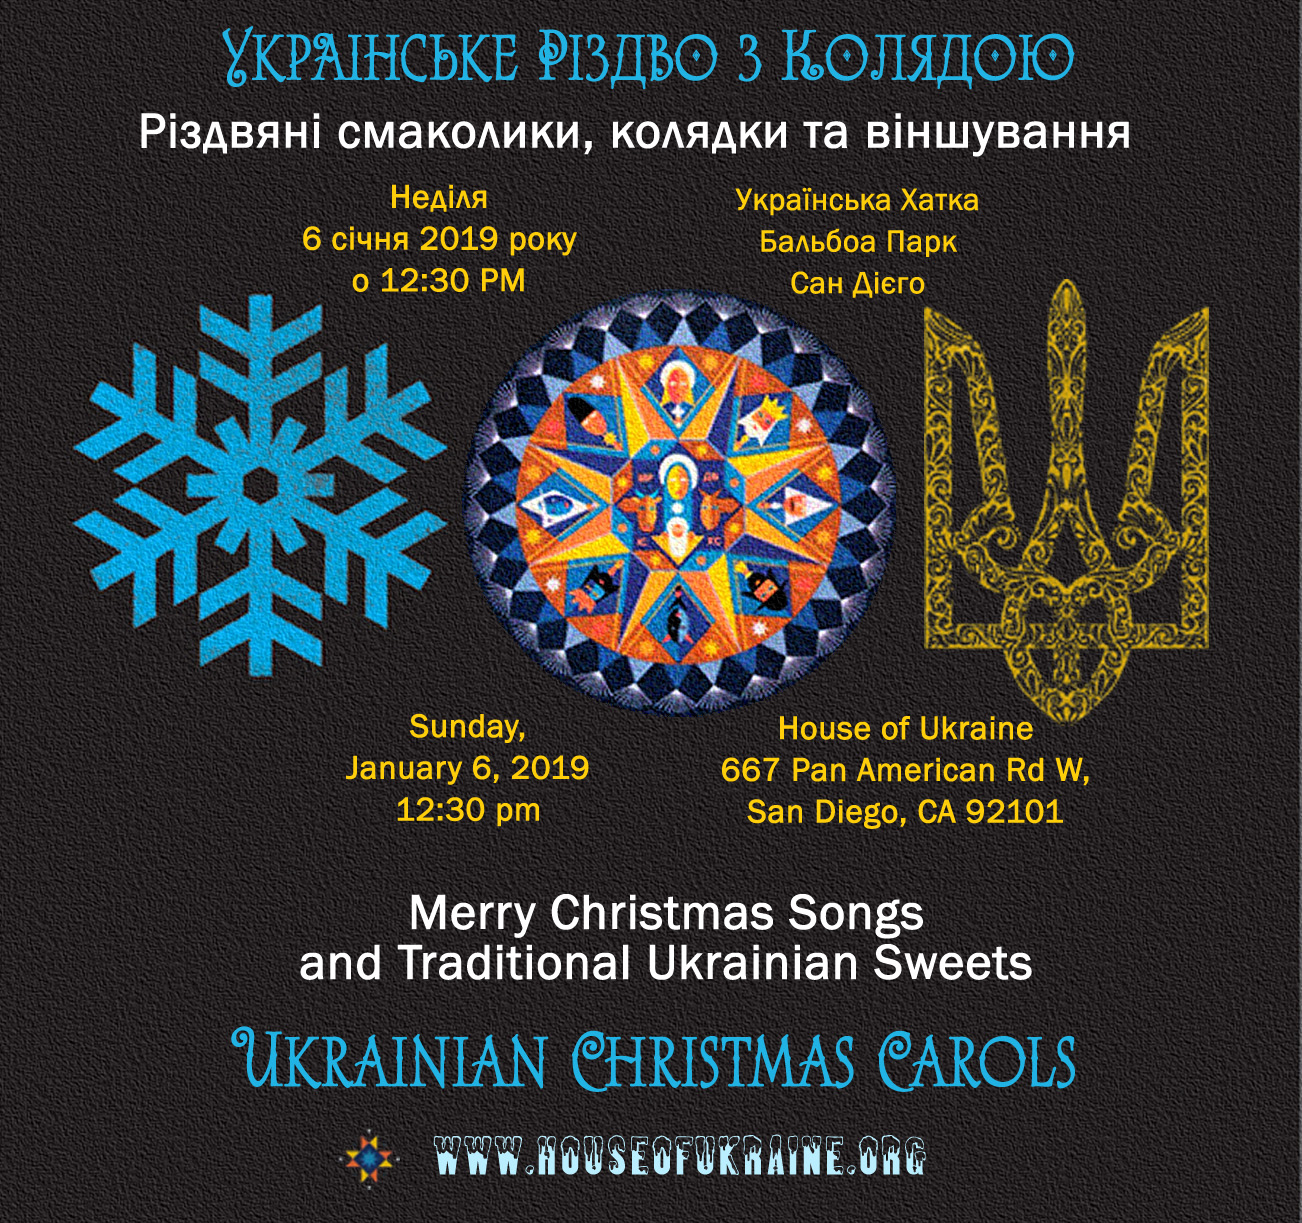 San Diego Christmas 2019 Ukrainian Christmas Carols (01/06/2019)   House of Ukraine. San